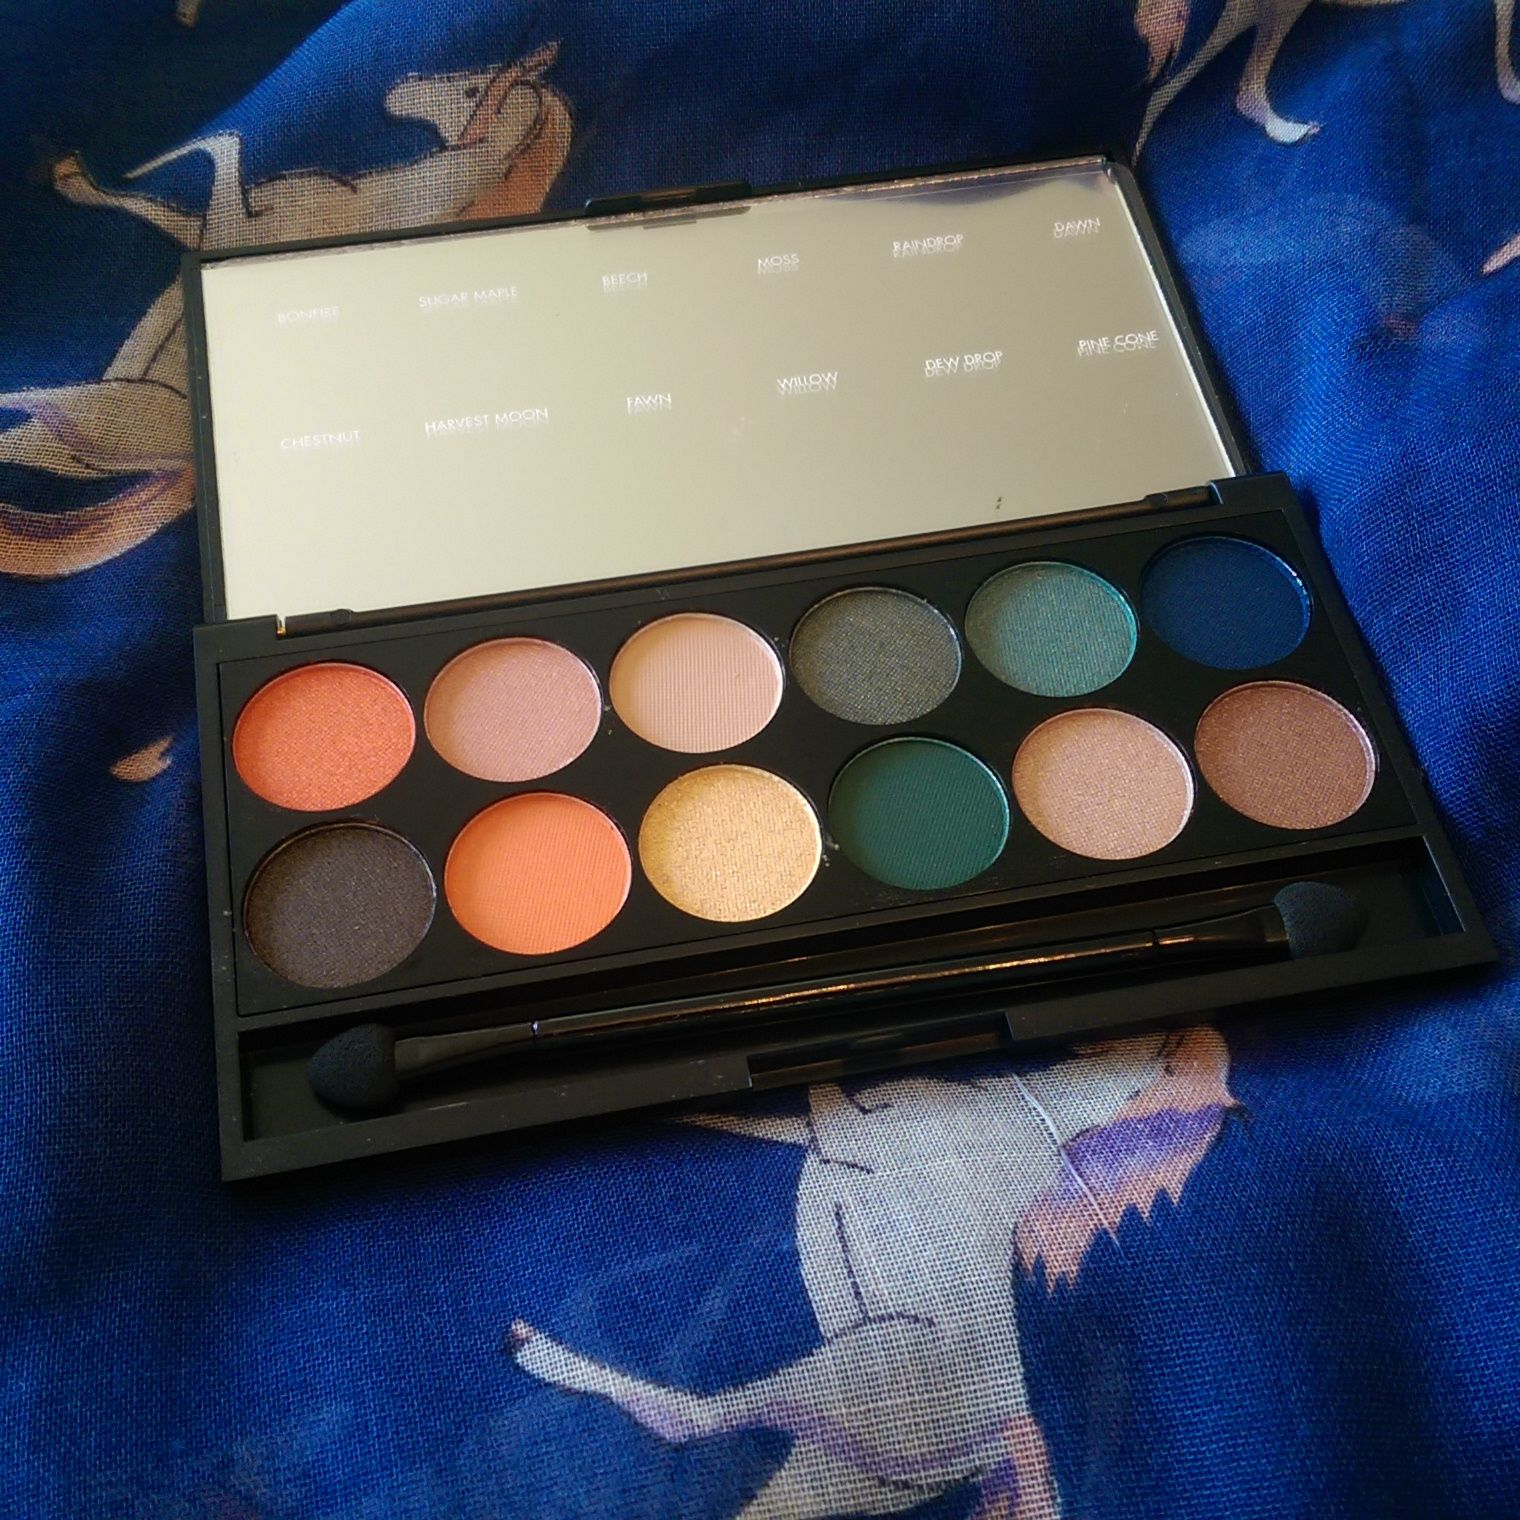 Sleek Onto The Horizon Ltd Edition Palette Review with Arm